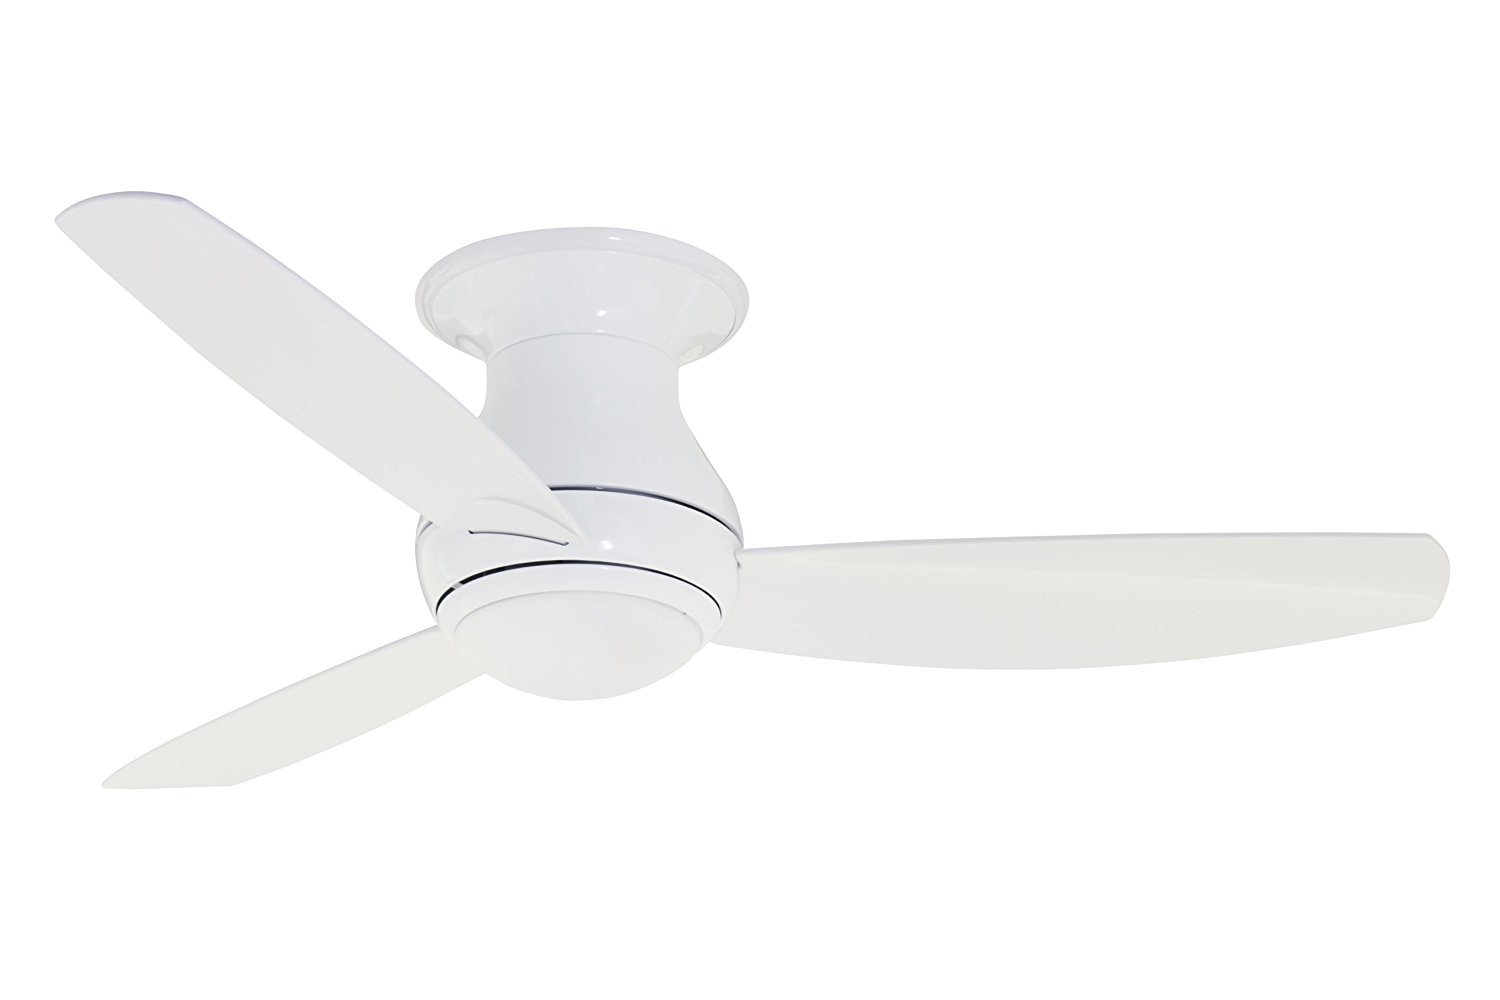 Ceiling Hugger Fans For Low Ceilings Cool Ideas For Home